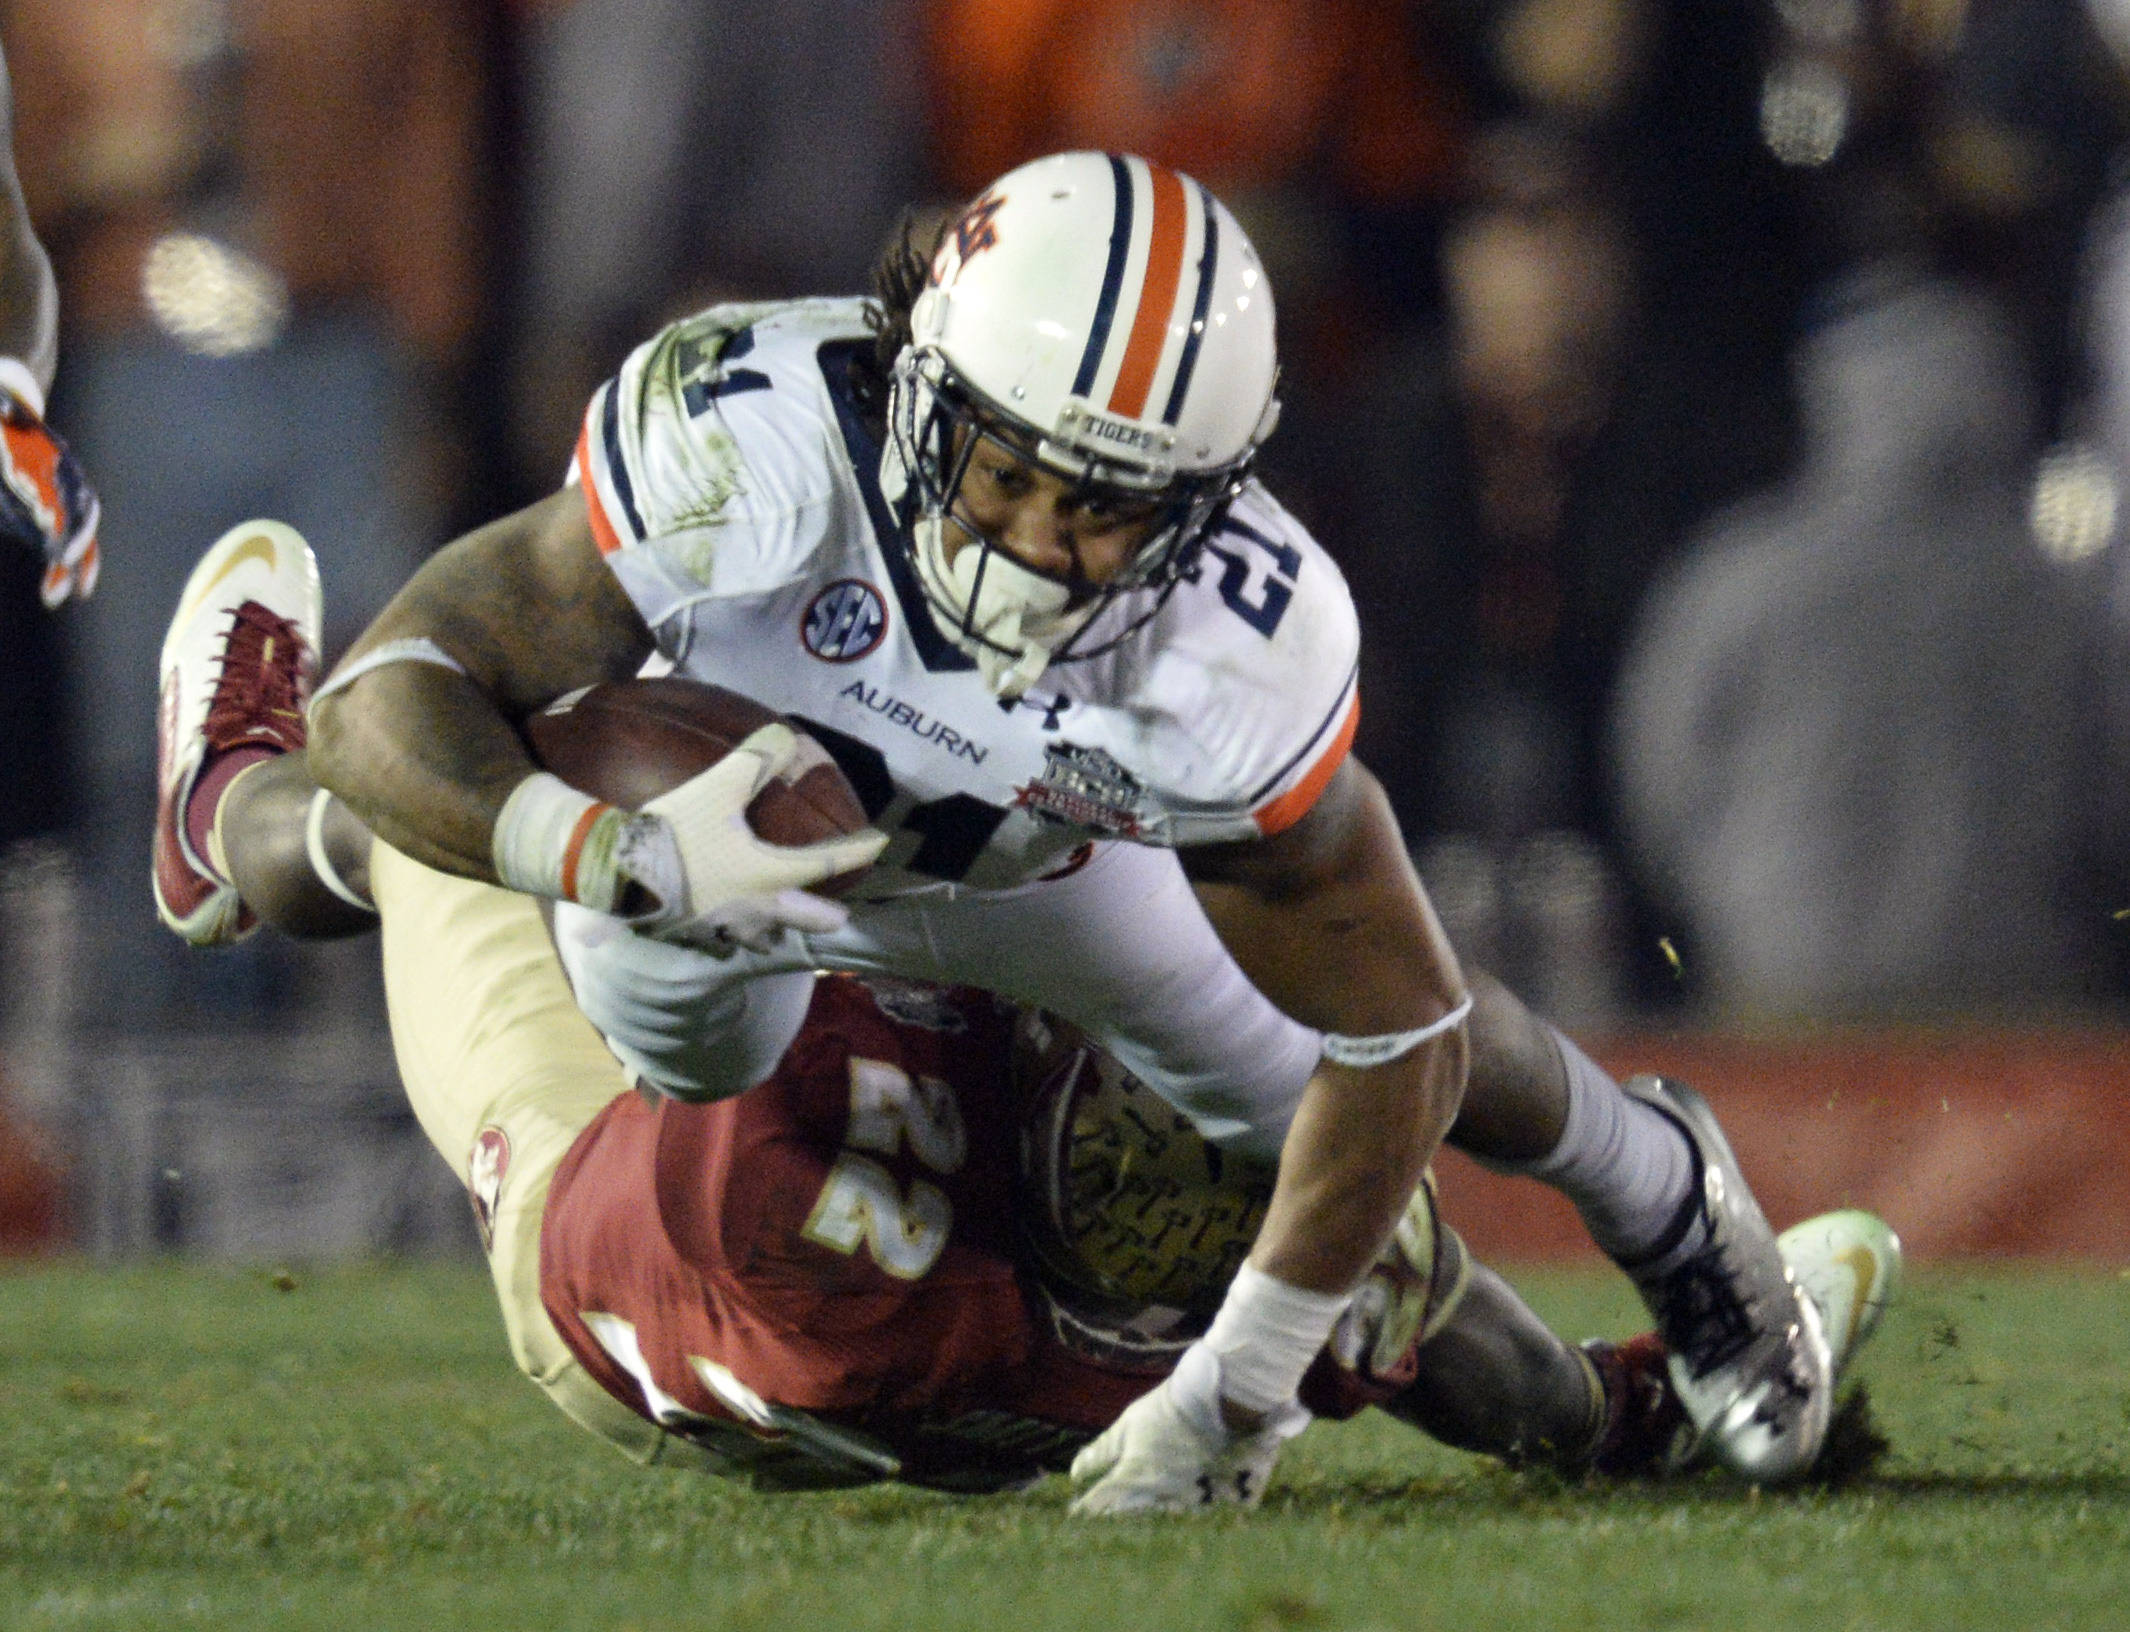 Jan 6, 2014; Pasadena, CA, USA; Auburn Tigers running back Tre Mason (21) is tackled by Florida State Seminoles linebacker Telvin Smith (22) during the first half of the 2014 BCS National Championship game at the Rose Bowl.  Mandatory Credit: Robert Hanashiro-USA TODAY Sports